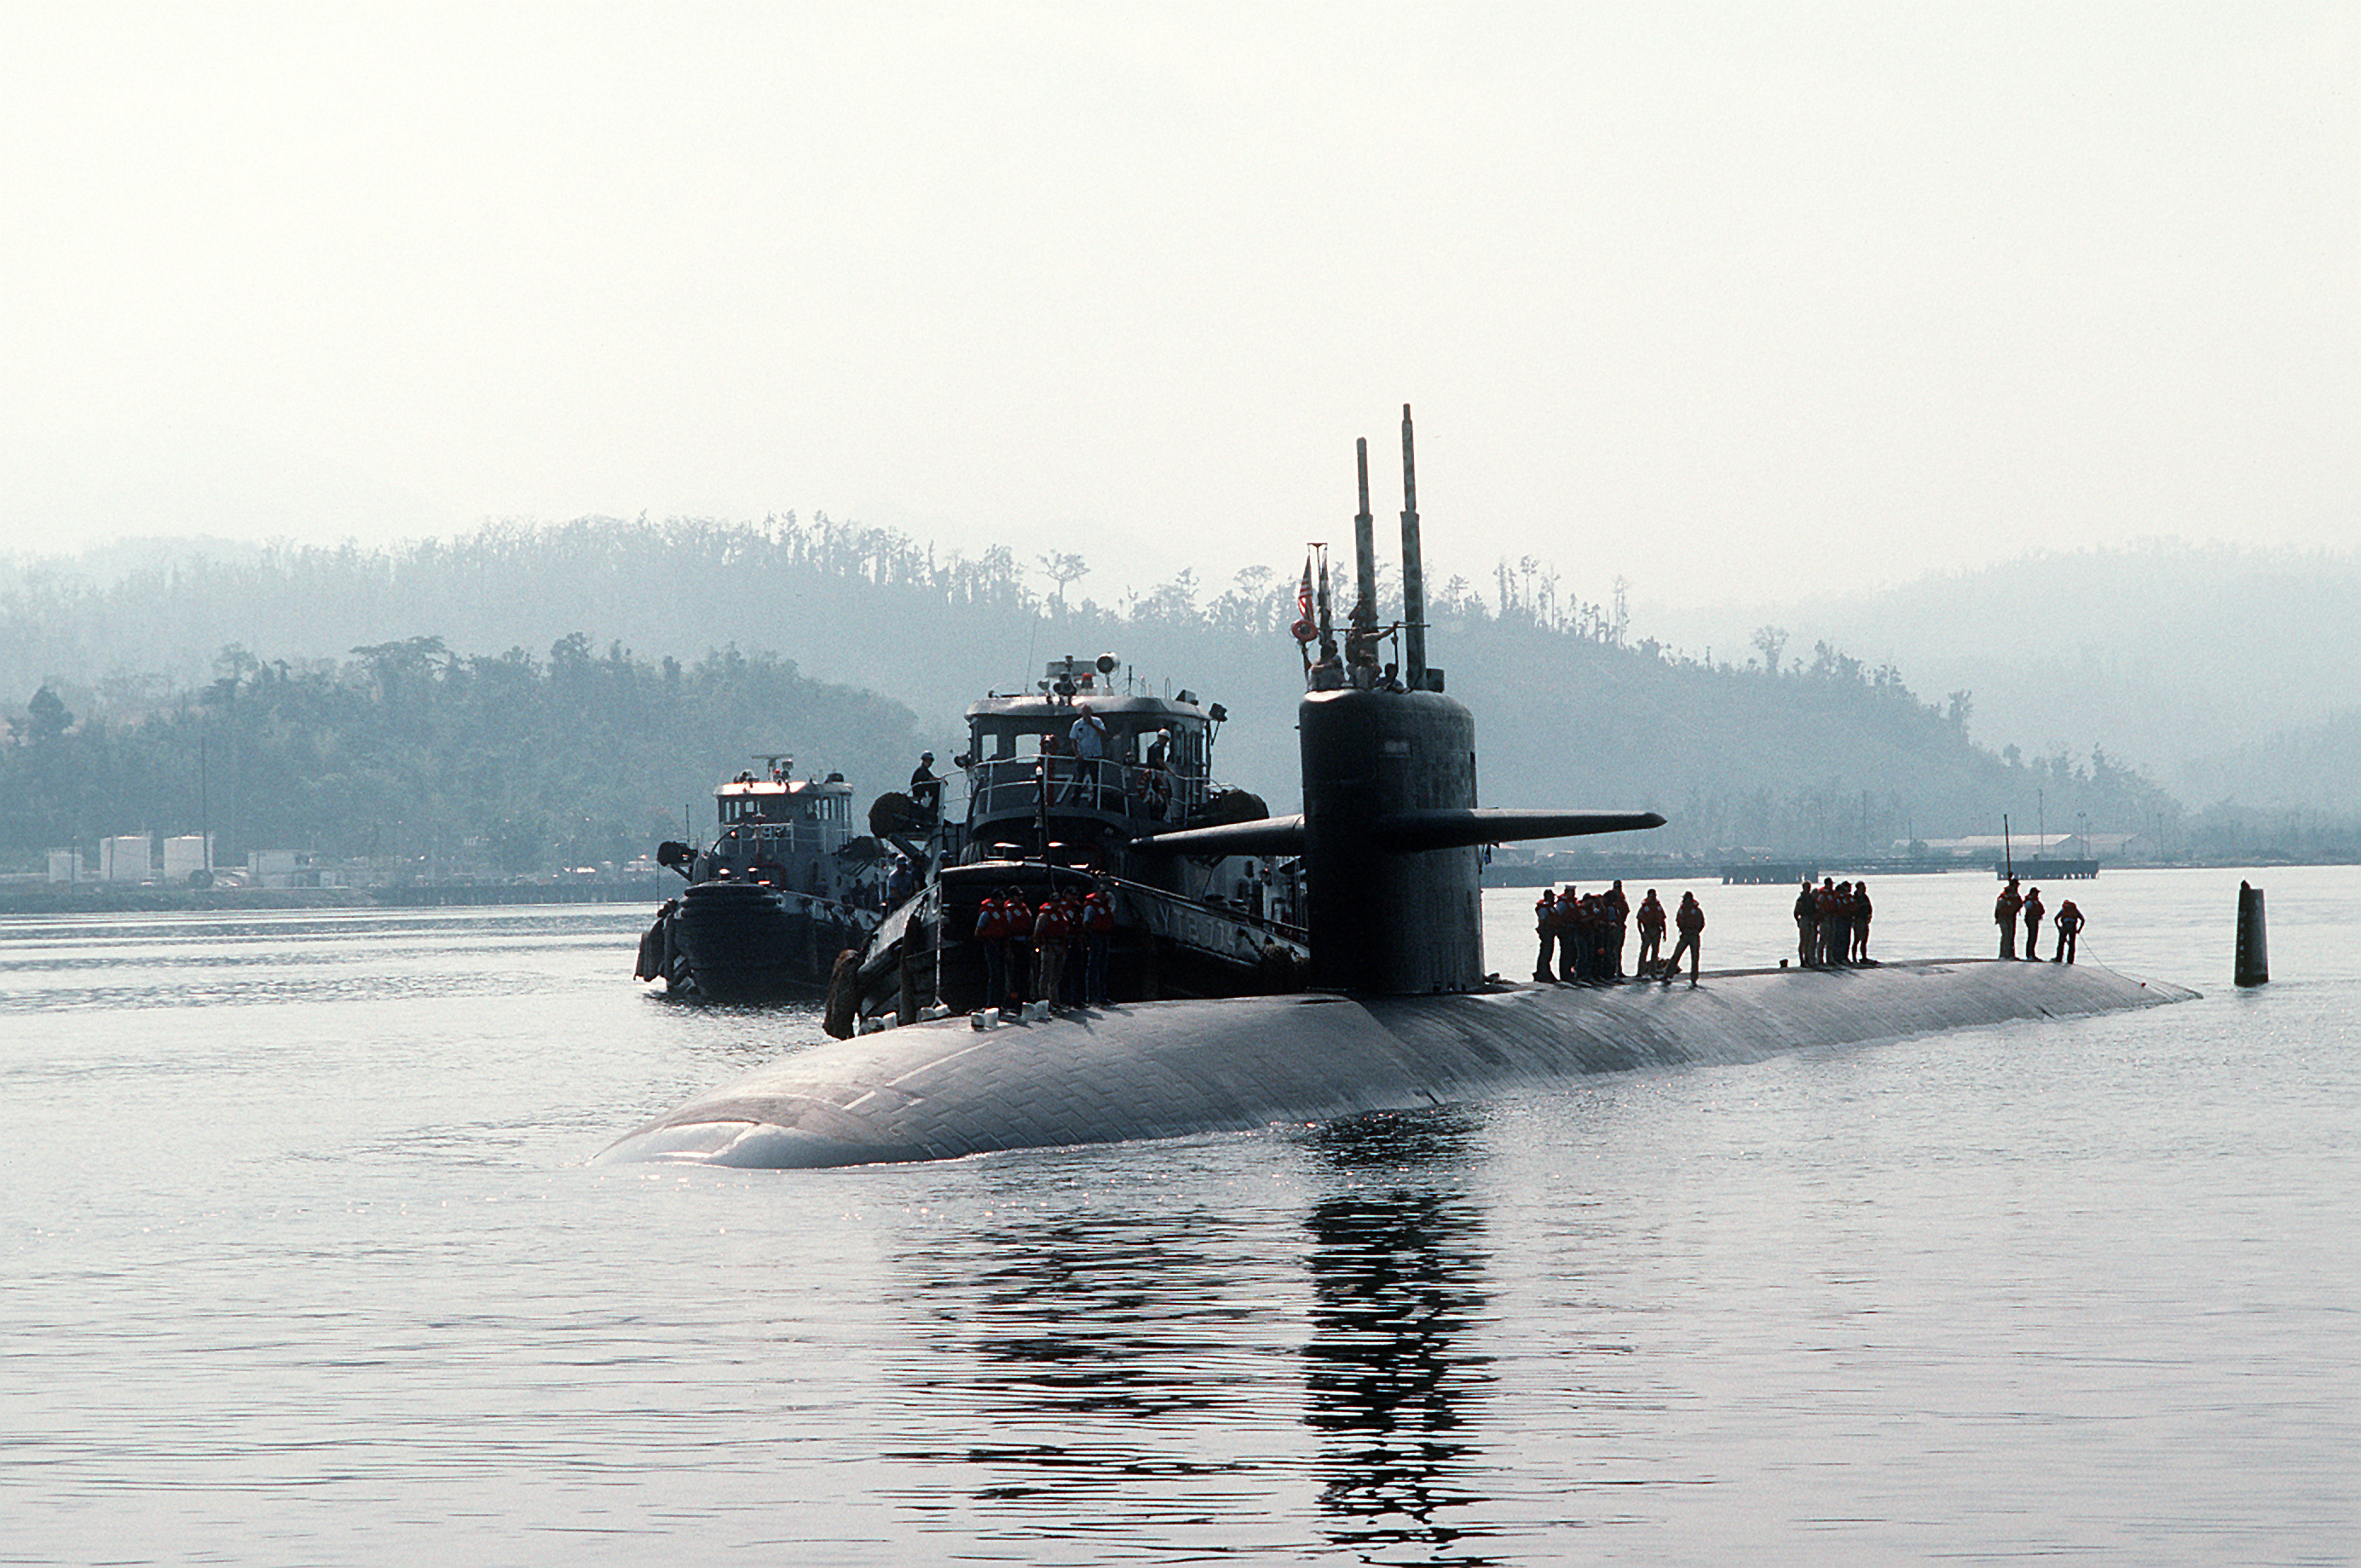 USS Indianapolis (SSN-697)